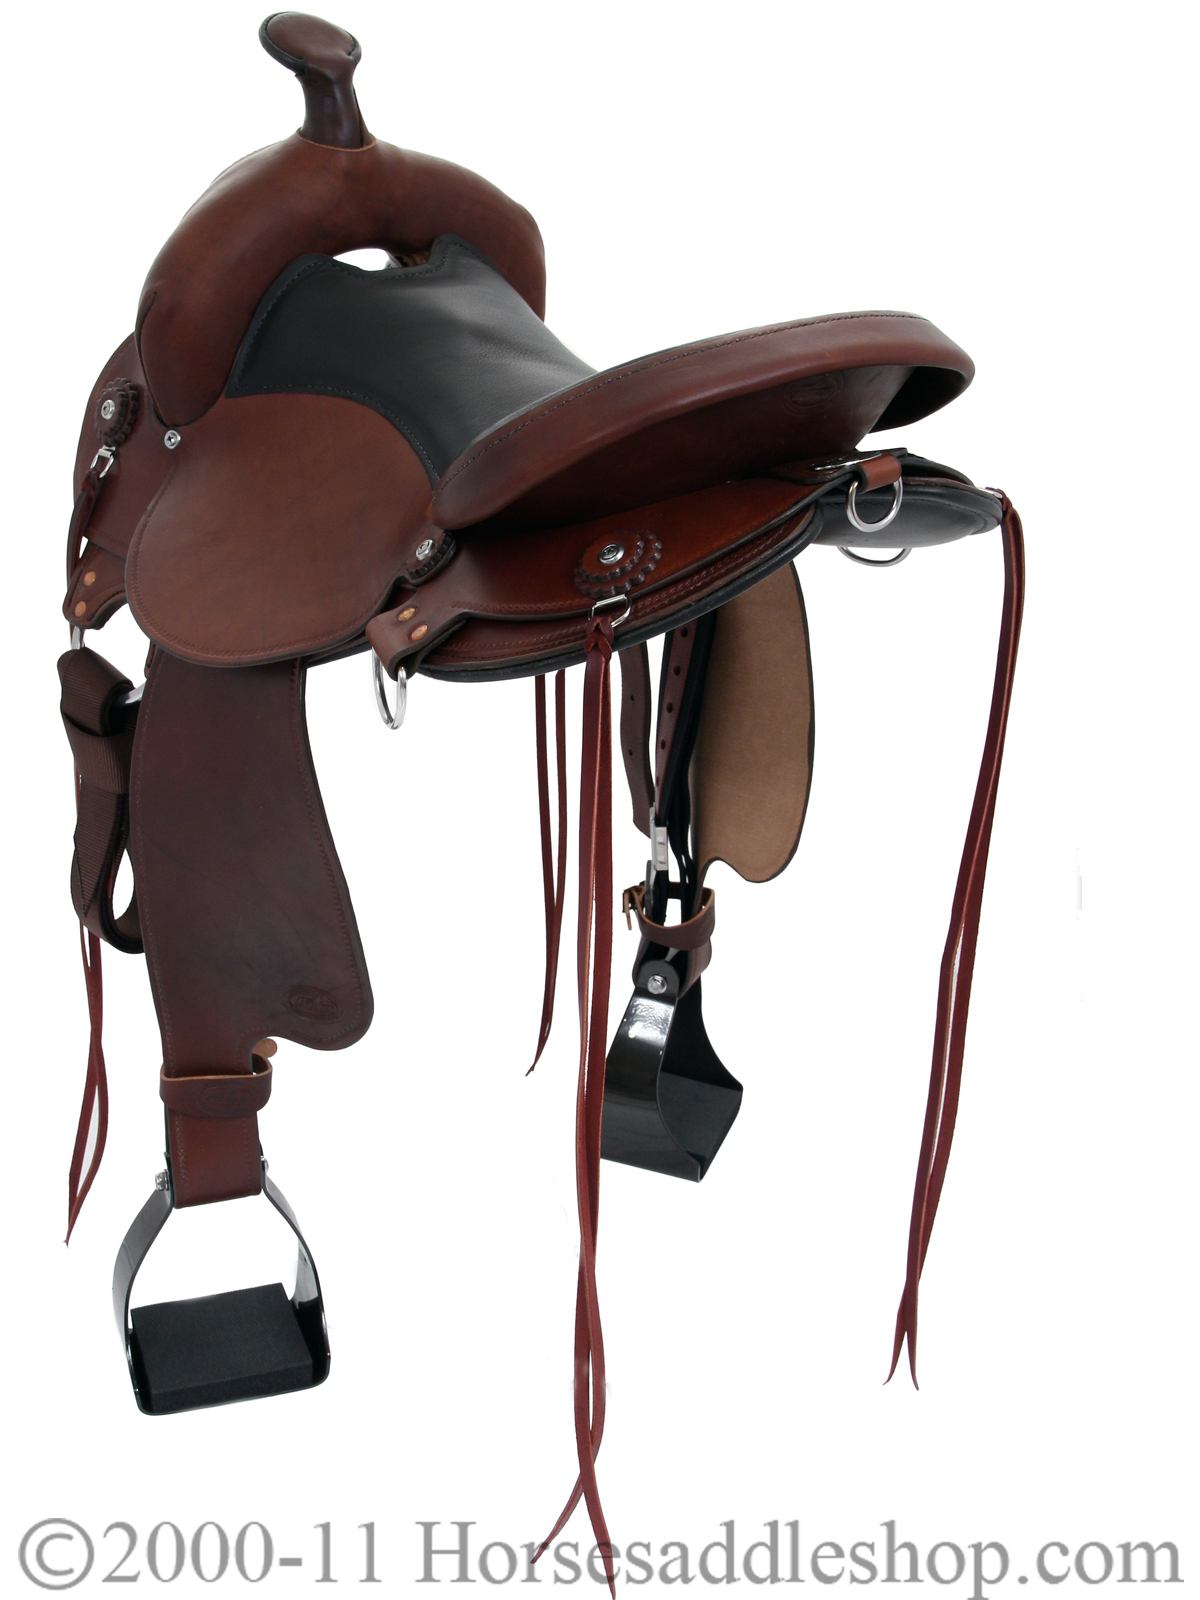 Fabtron Cross Trail saddle